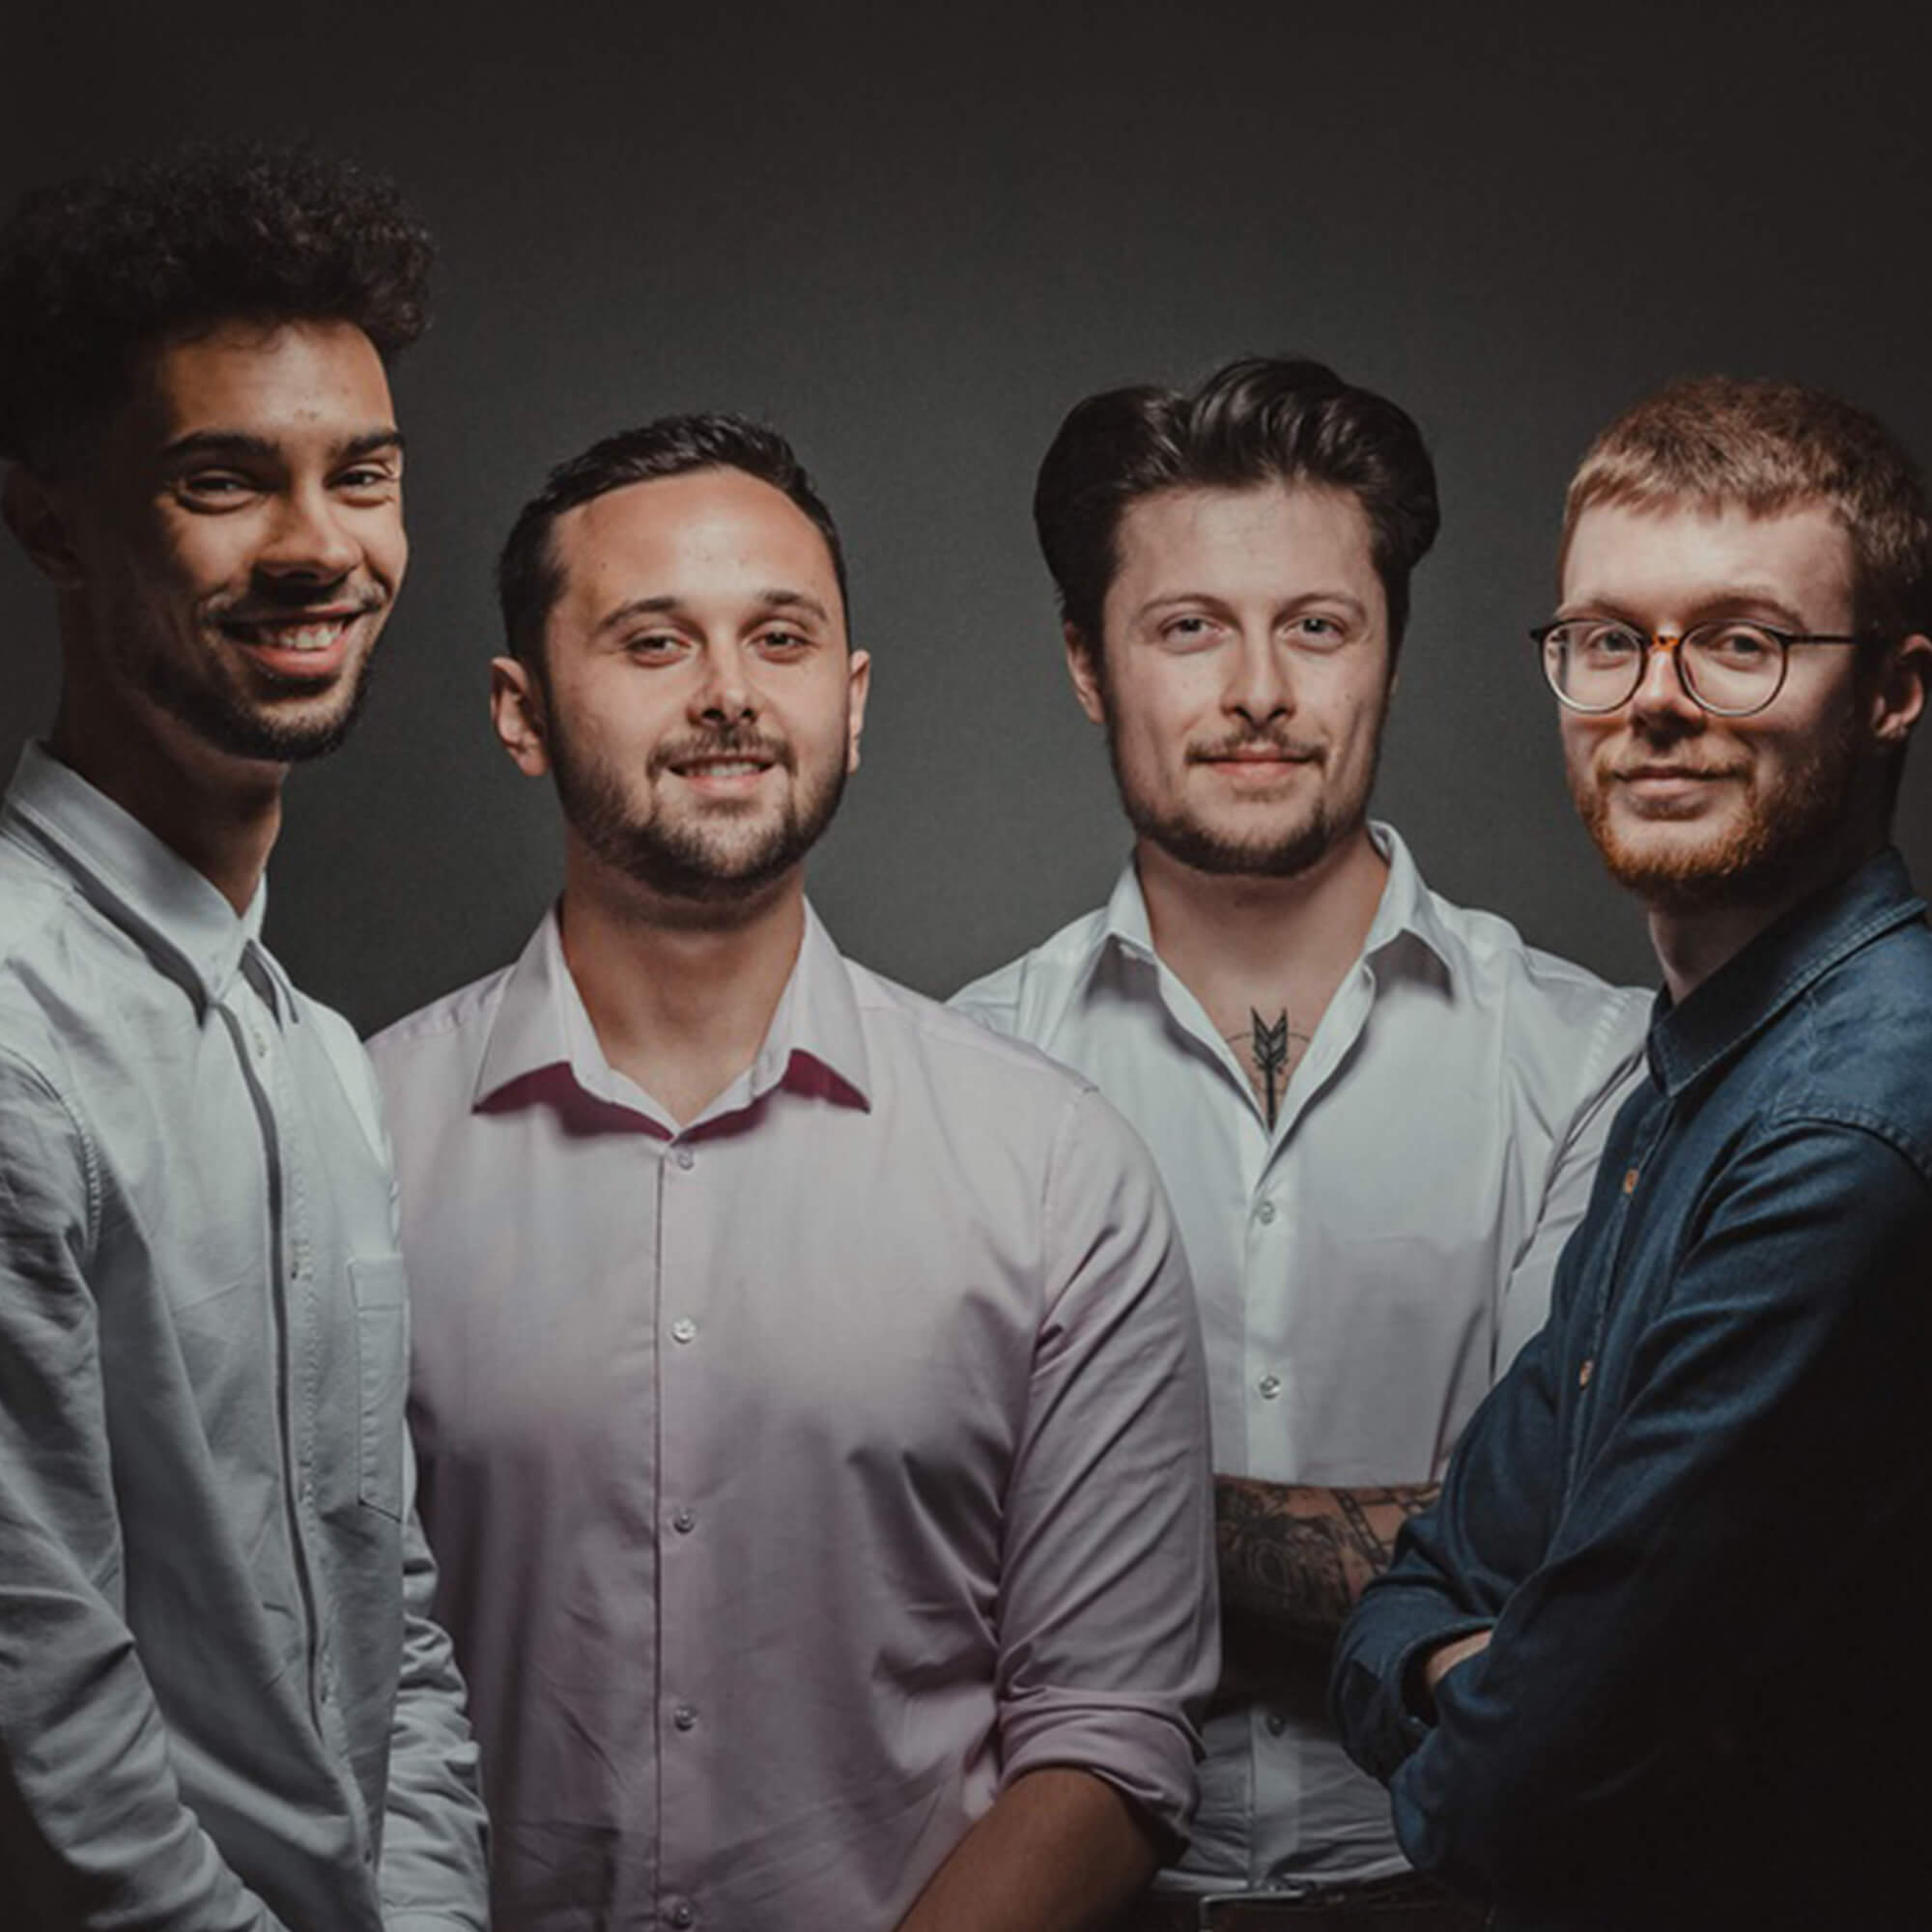 Goldbox film production team consists of four men. In this image they stand together against a black background, they are wearing shirts and smiling.